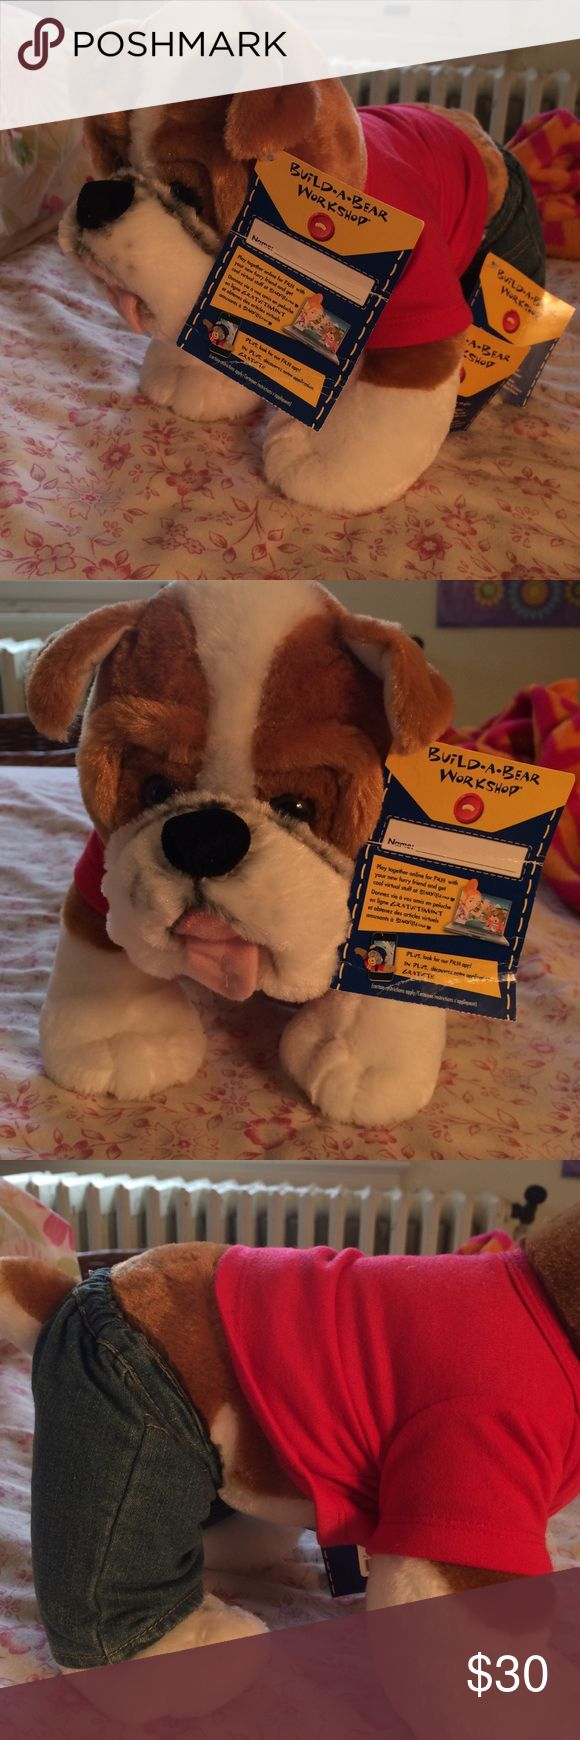 Brand new build a bear Bull Dog Brand new, tags still attached build a bear bulldog. This listing comes with the clothes. You may purchase without clothes at discounted rate or just buy the clothes separately. Comment if you want me to make a new listing for that. Clothes still have tags as well. Open to offers, I bundle💗💗 Great gift 🎁 THE PRICE IS NEGOTIABLE Build A Bear Other